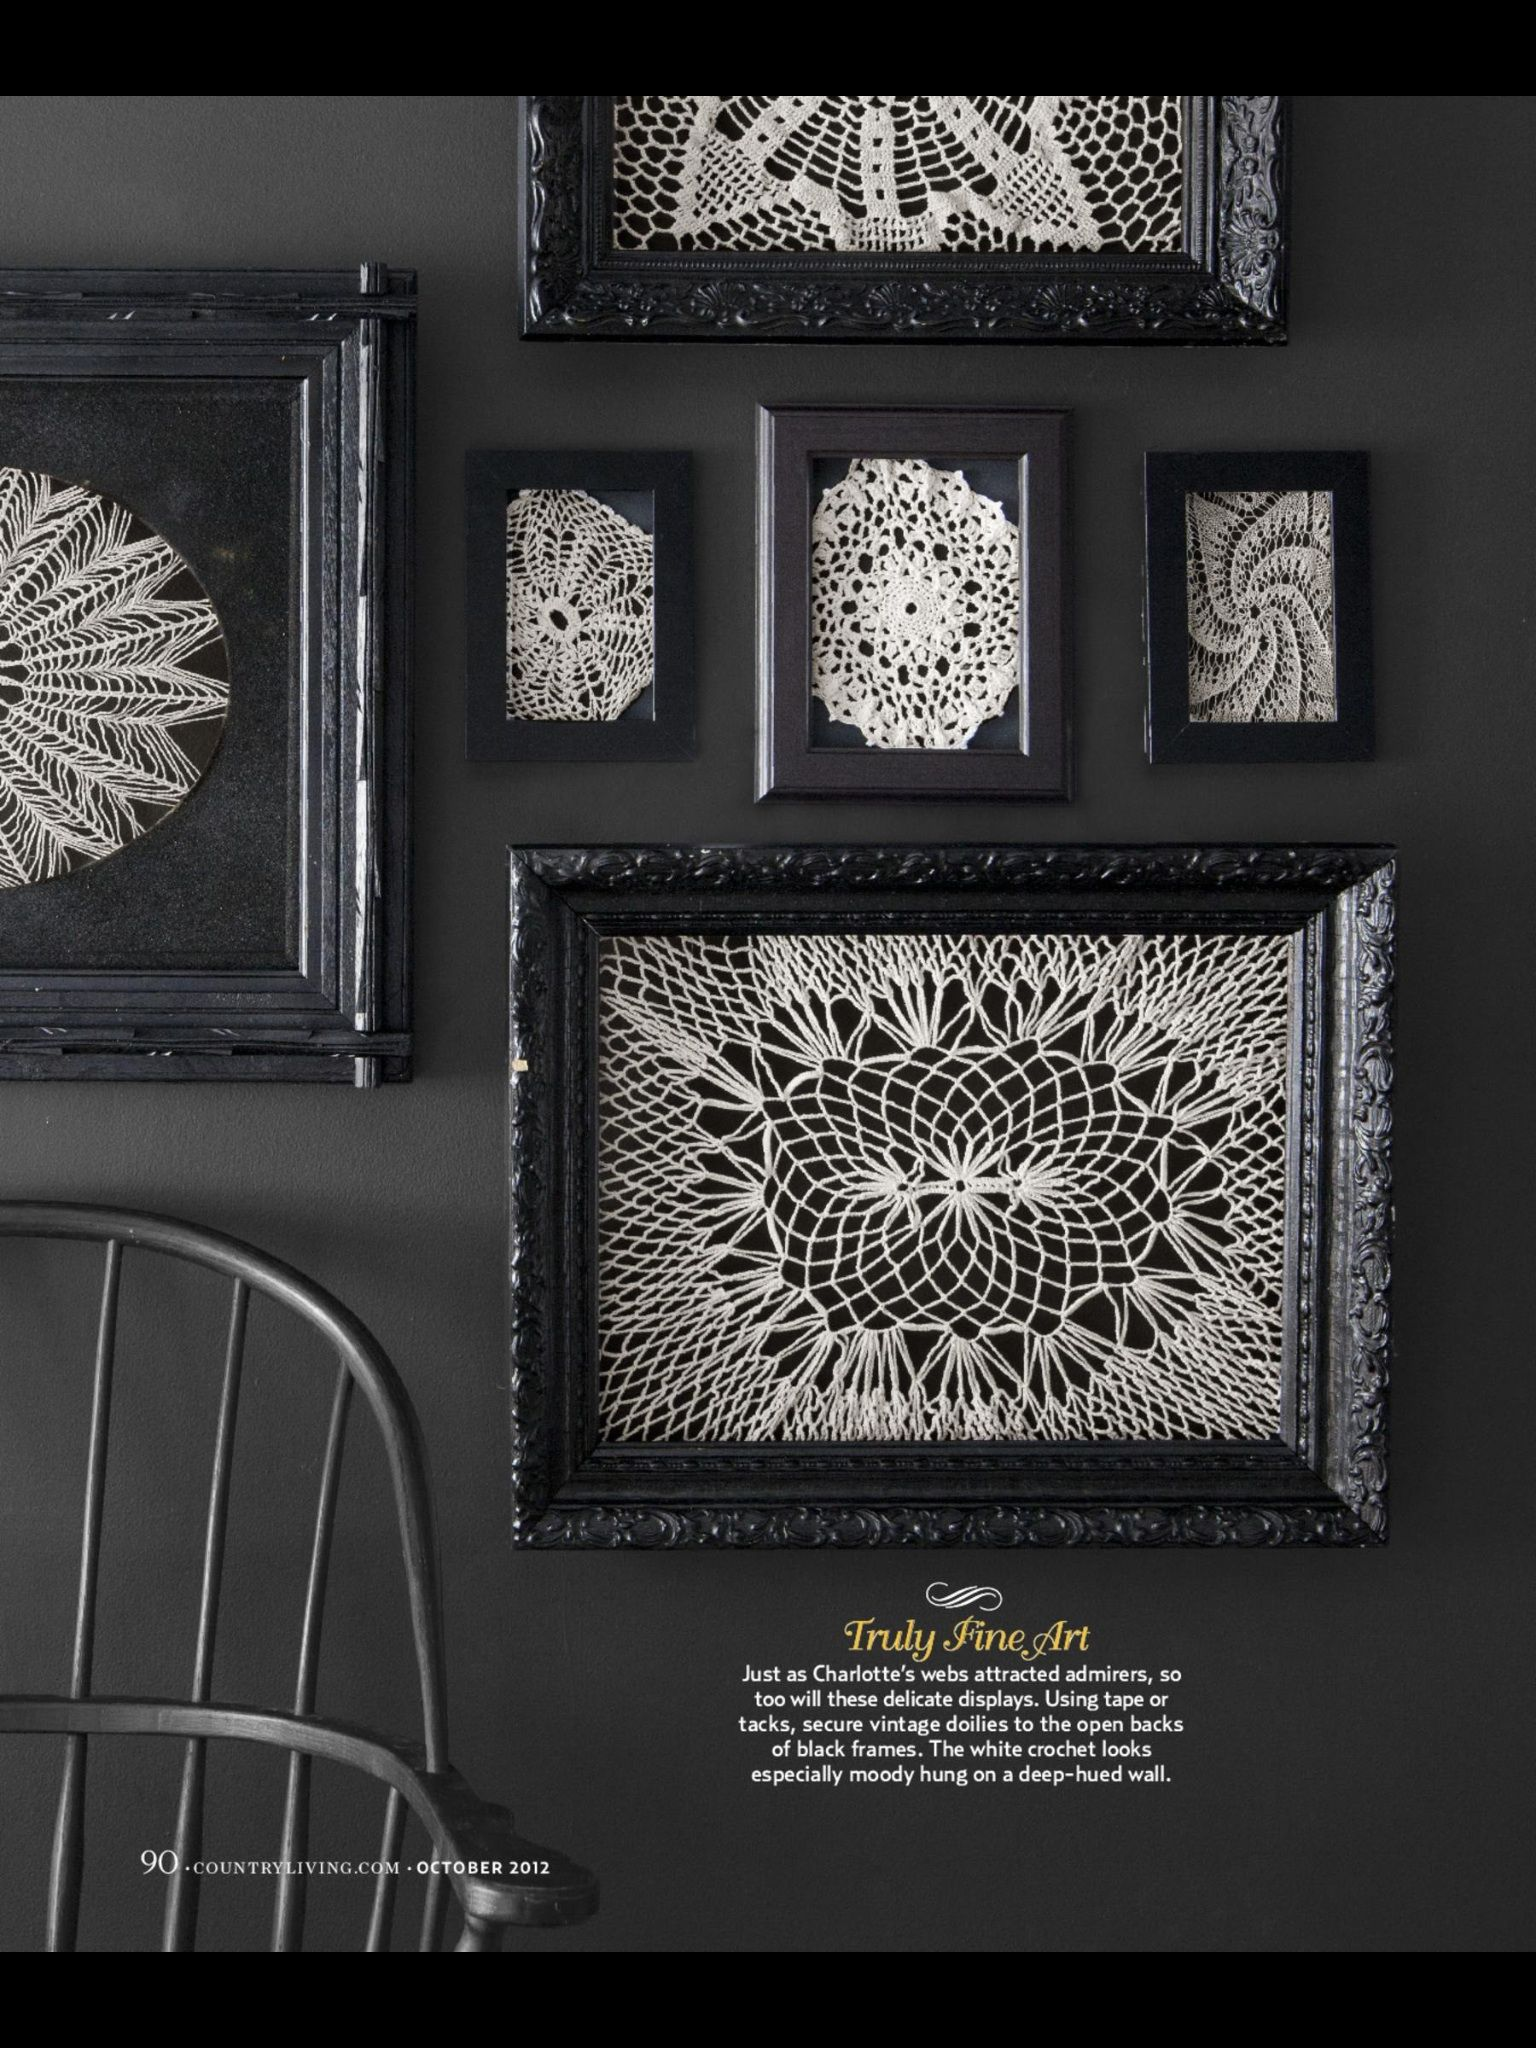 Interesting way to hang doilies crafts pinterest craft using tape or tacks secure vintage doilies to the open backs of black frames do it yourself halloween decorations country living solutioingenieria Gallery